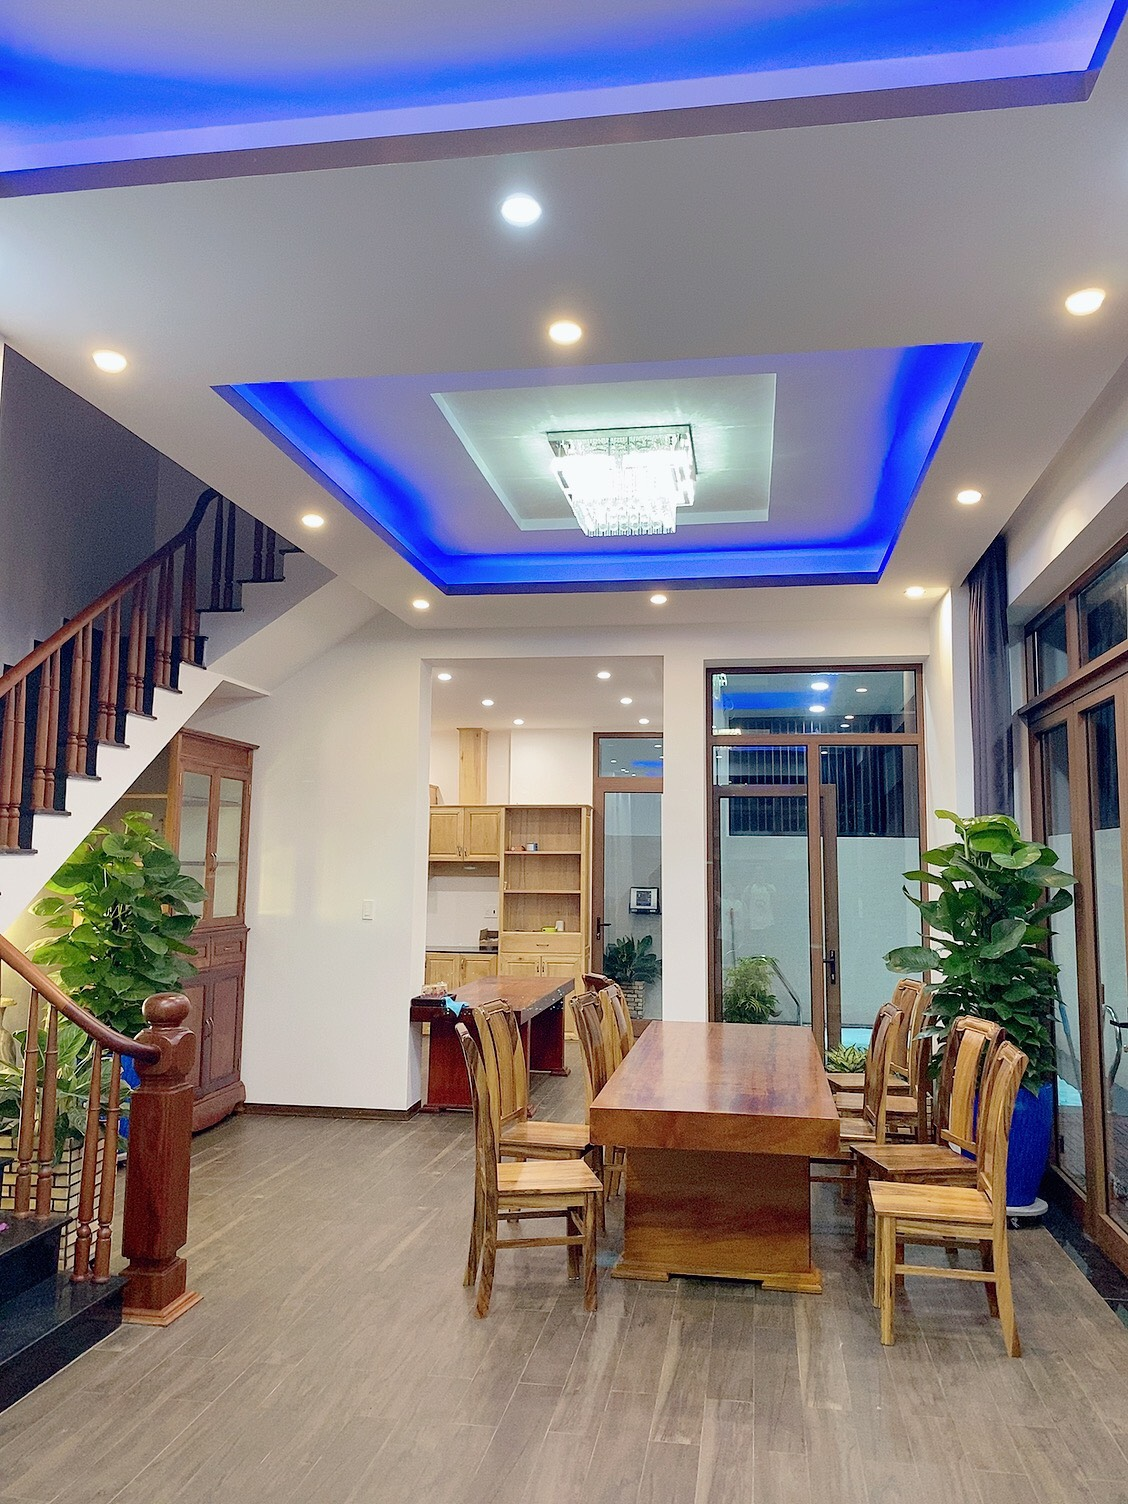 4 BEDROOM POOL VILLA FOR RENT IN FPT CITY